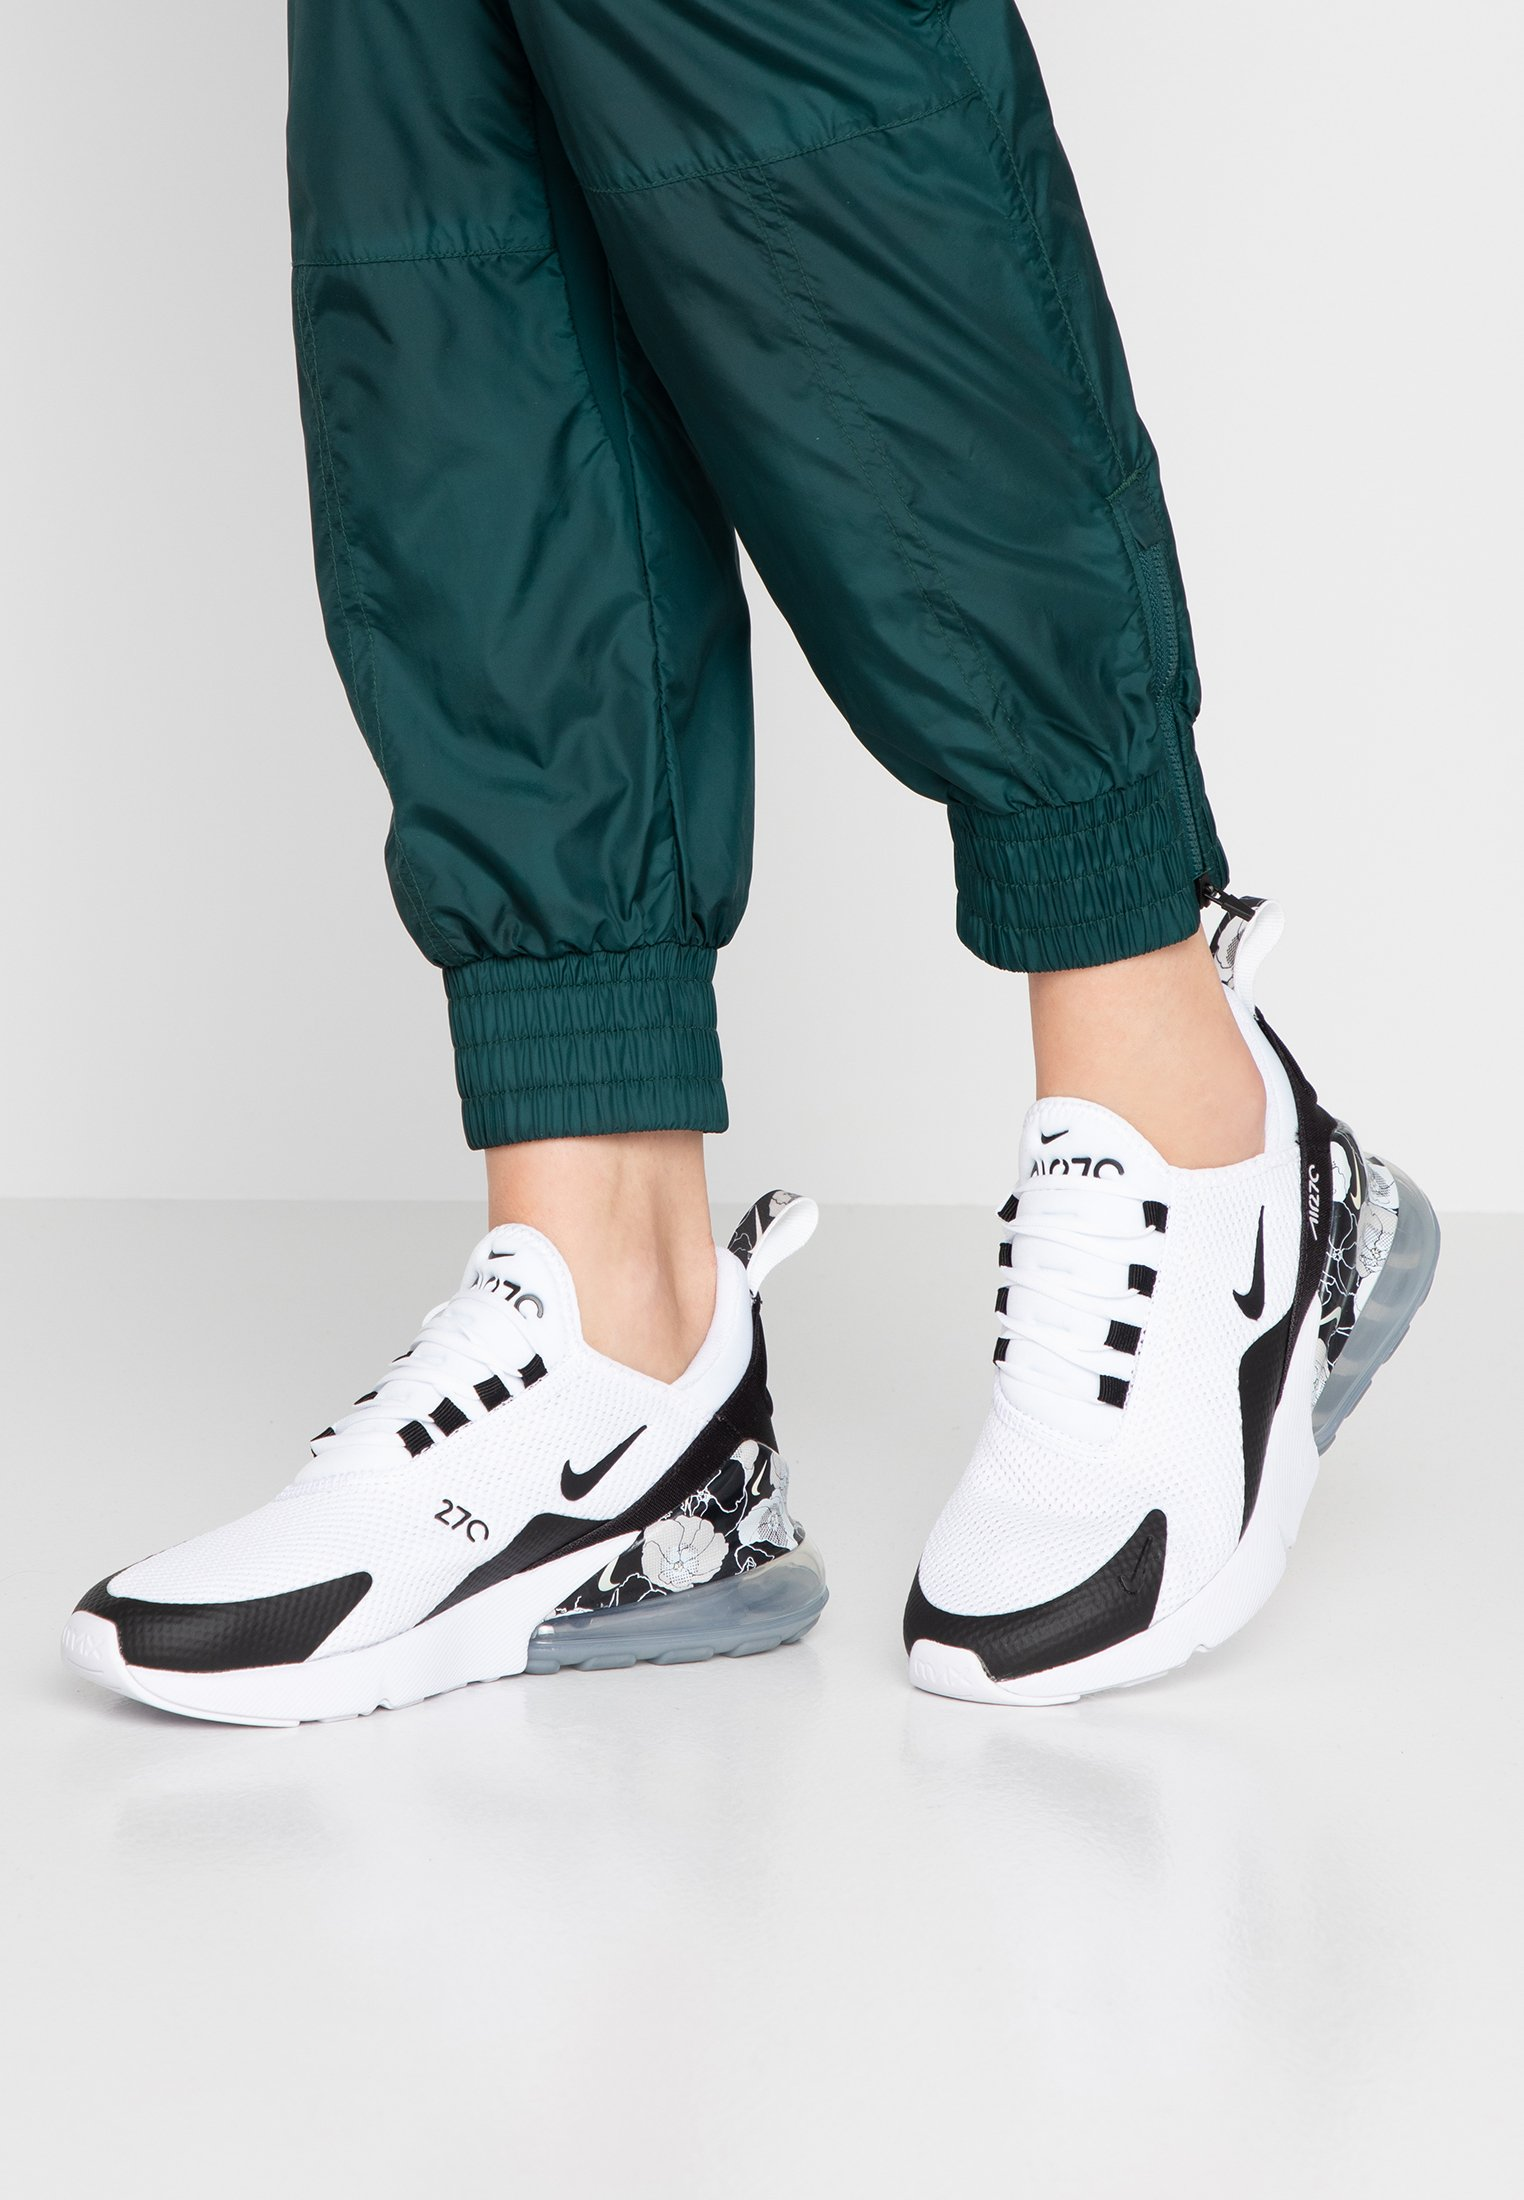 AIR MAX 270 Matalavartiset tennarit whiteblackmetallic silver